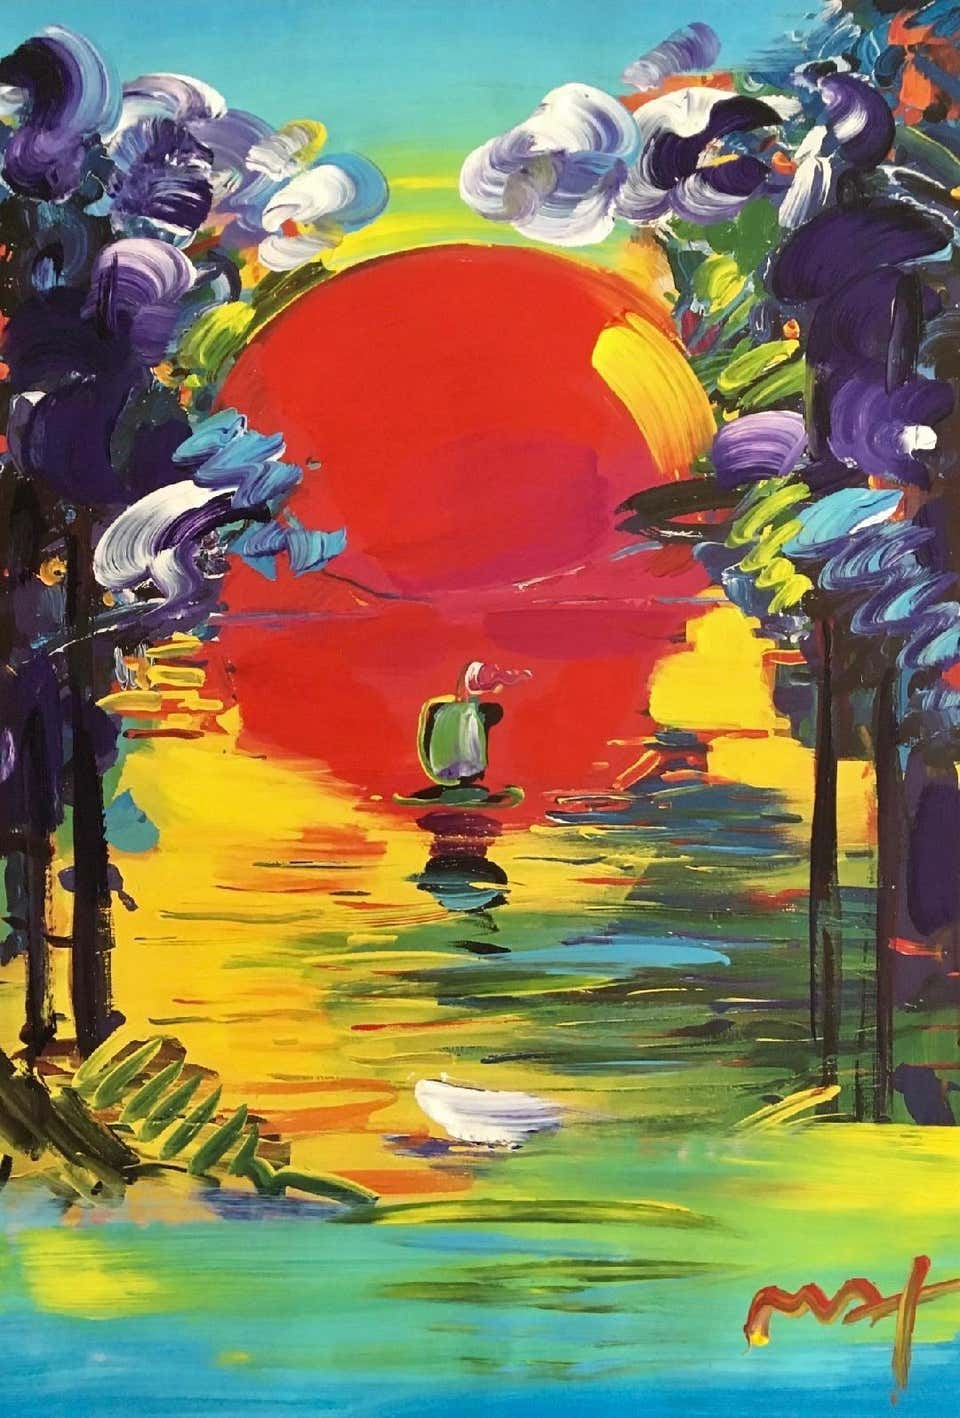 Hilo Chen Paintings - 6 For Sale at 1stdibs